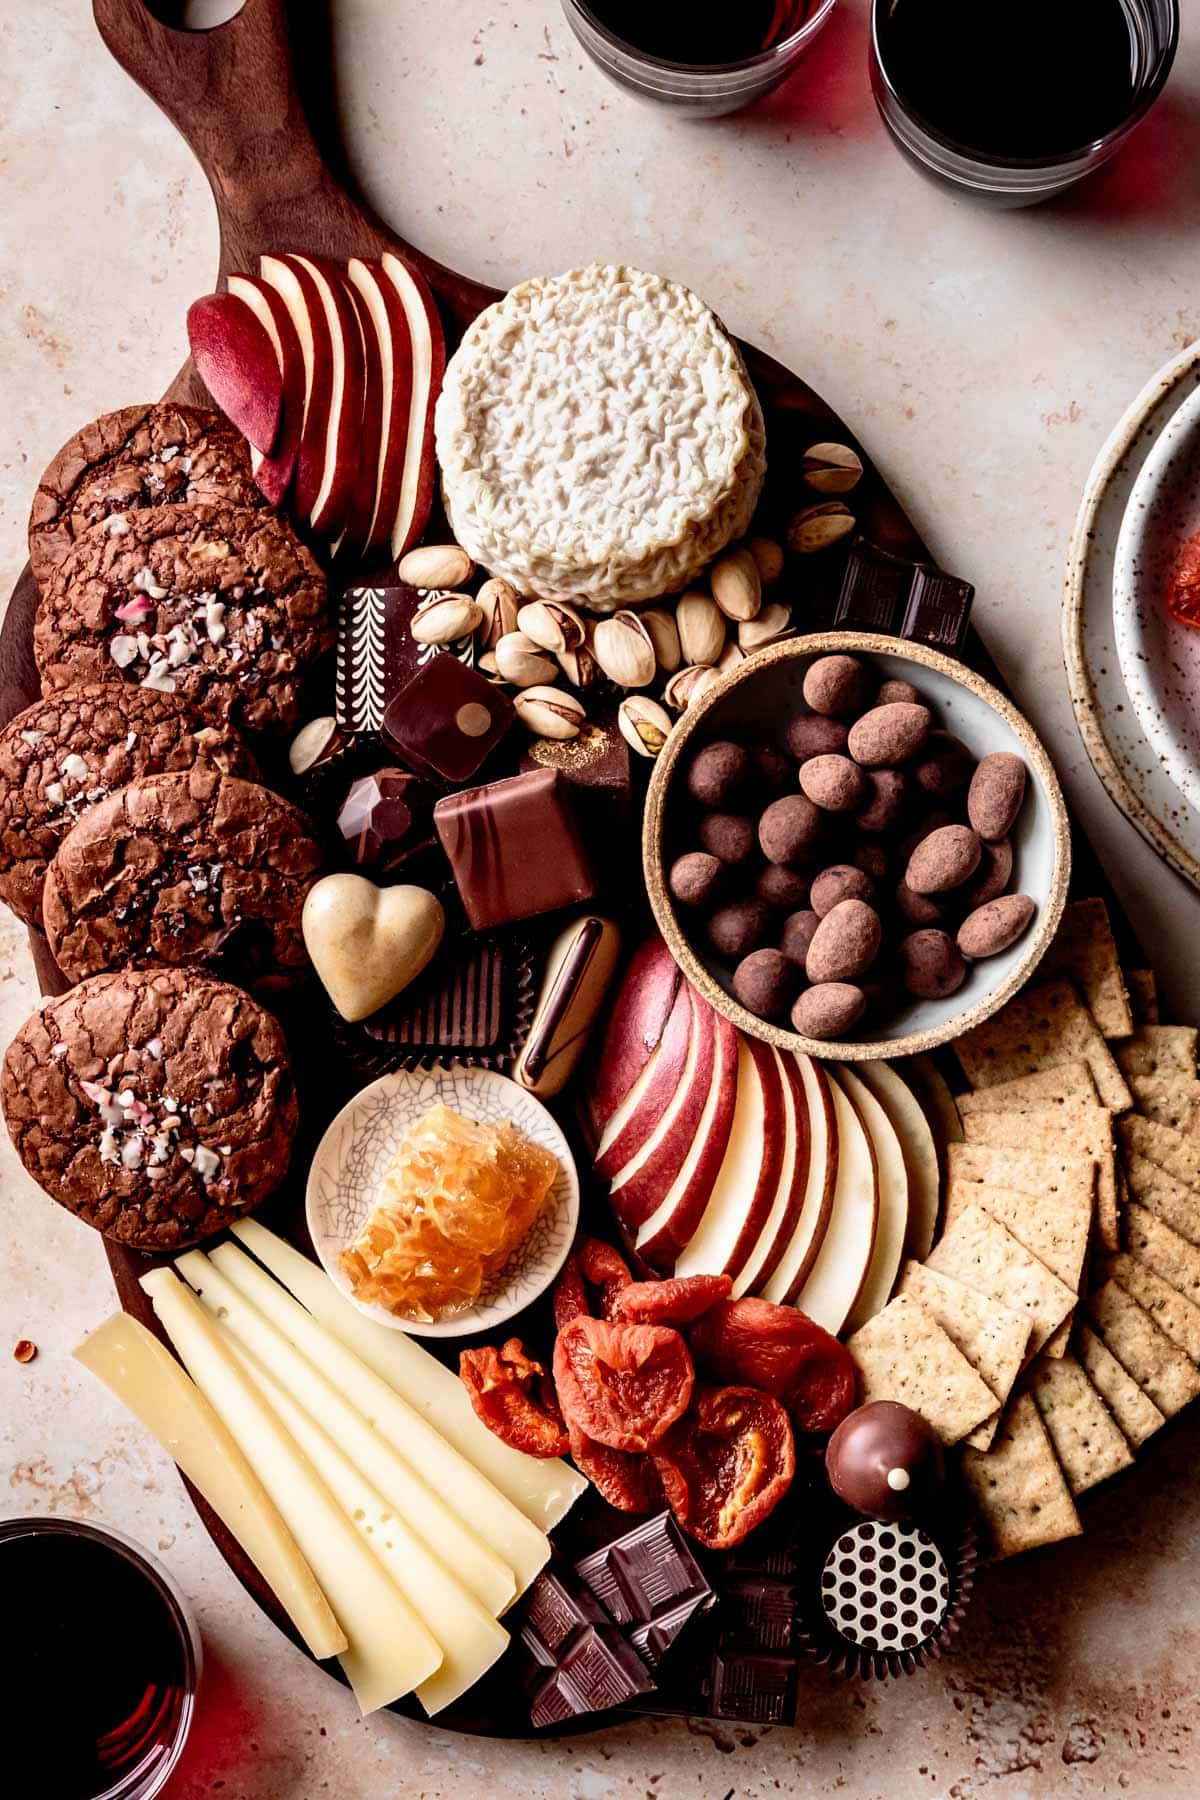 gluten-free dessert recipes: cheese and chocolate board